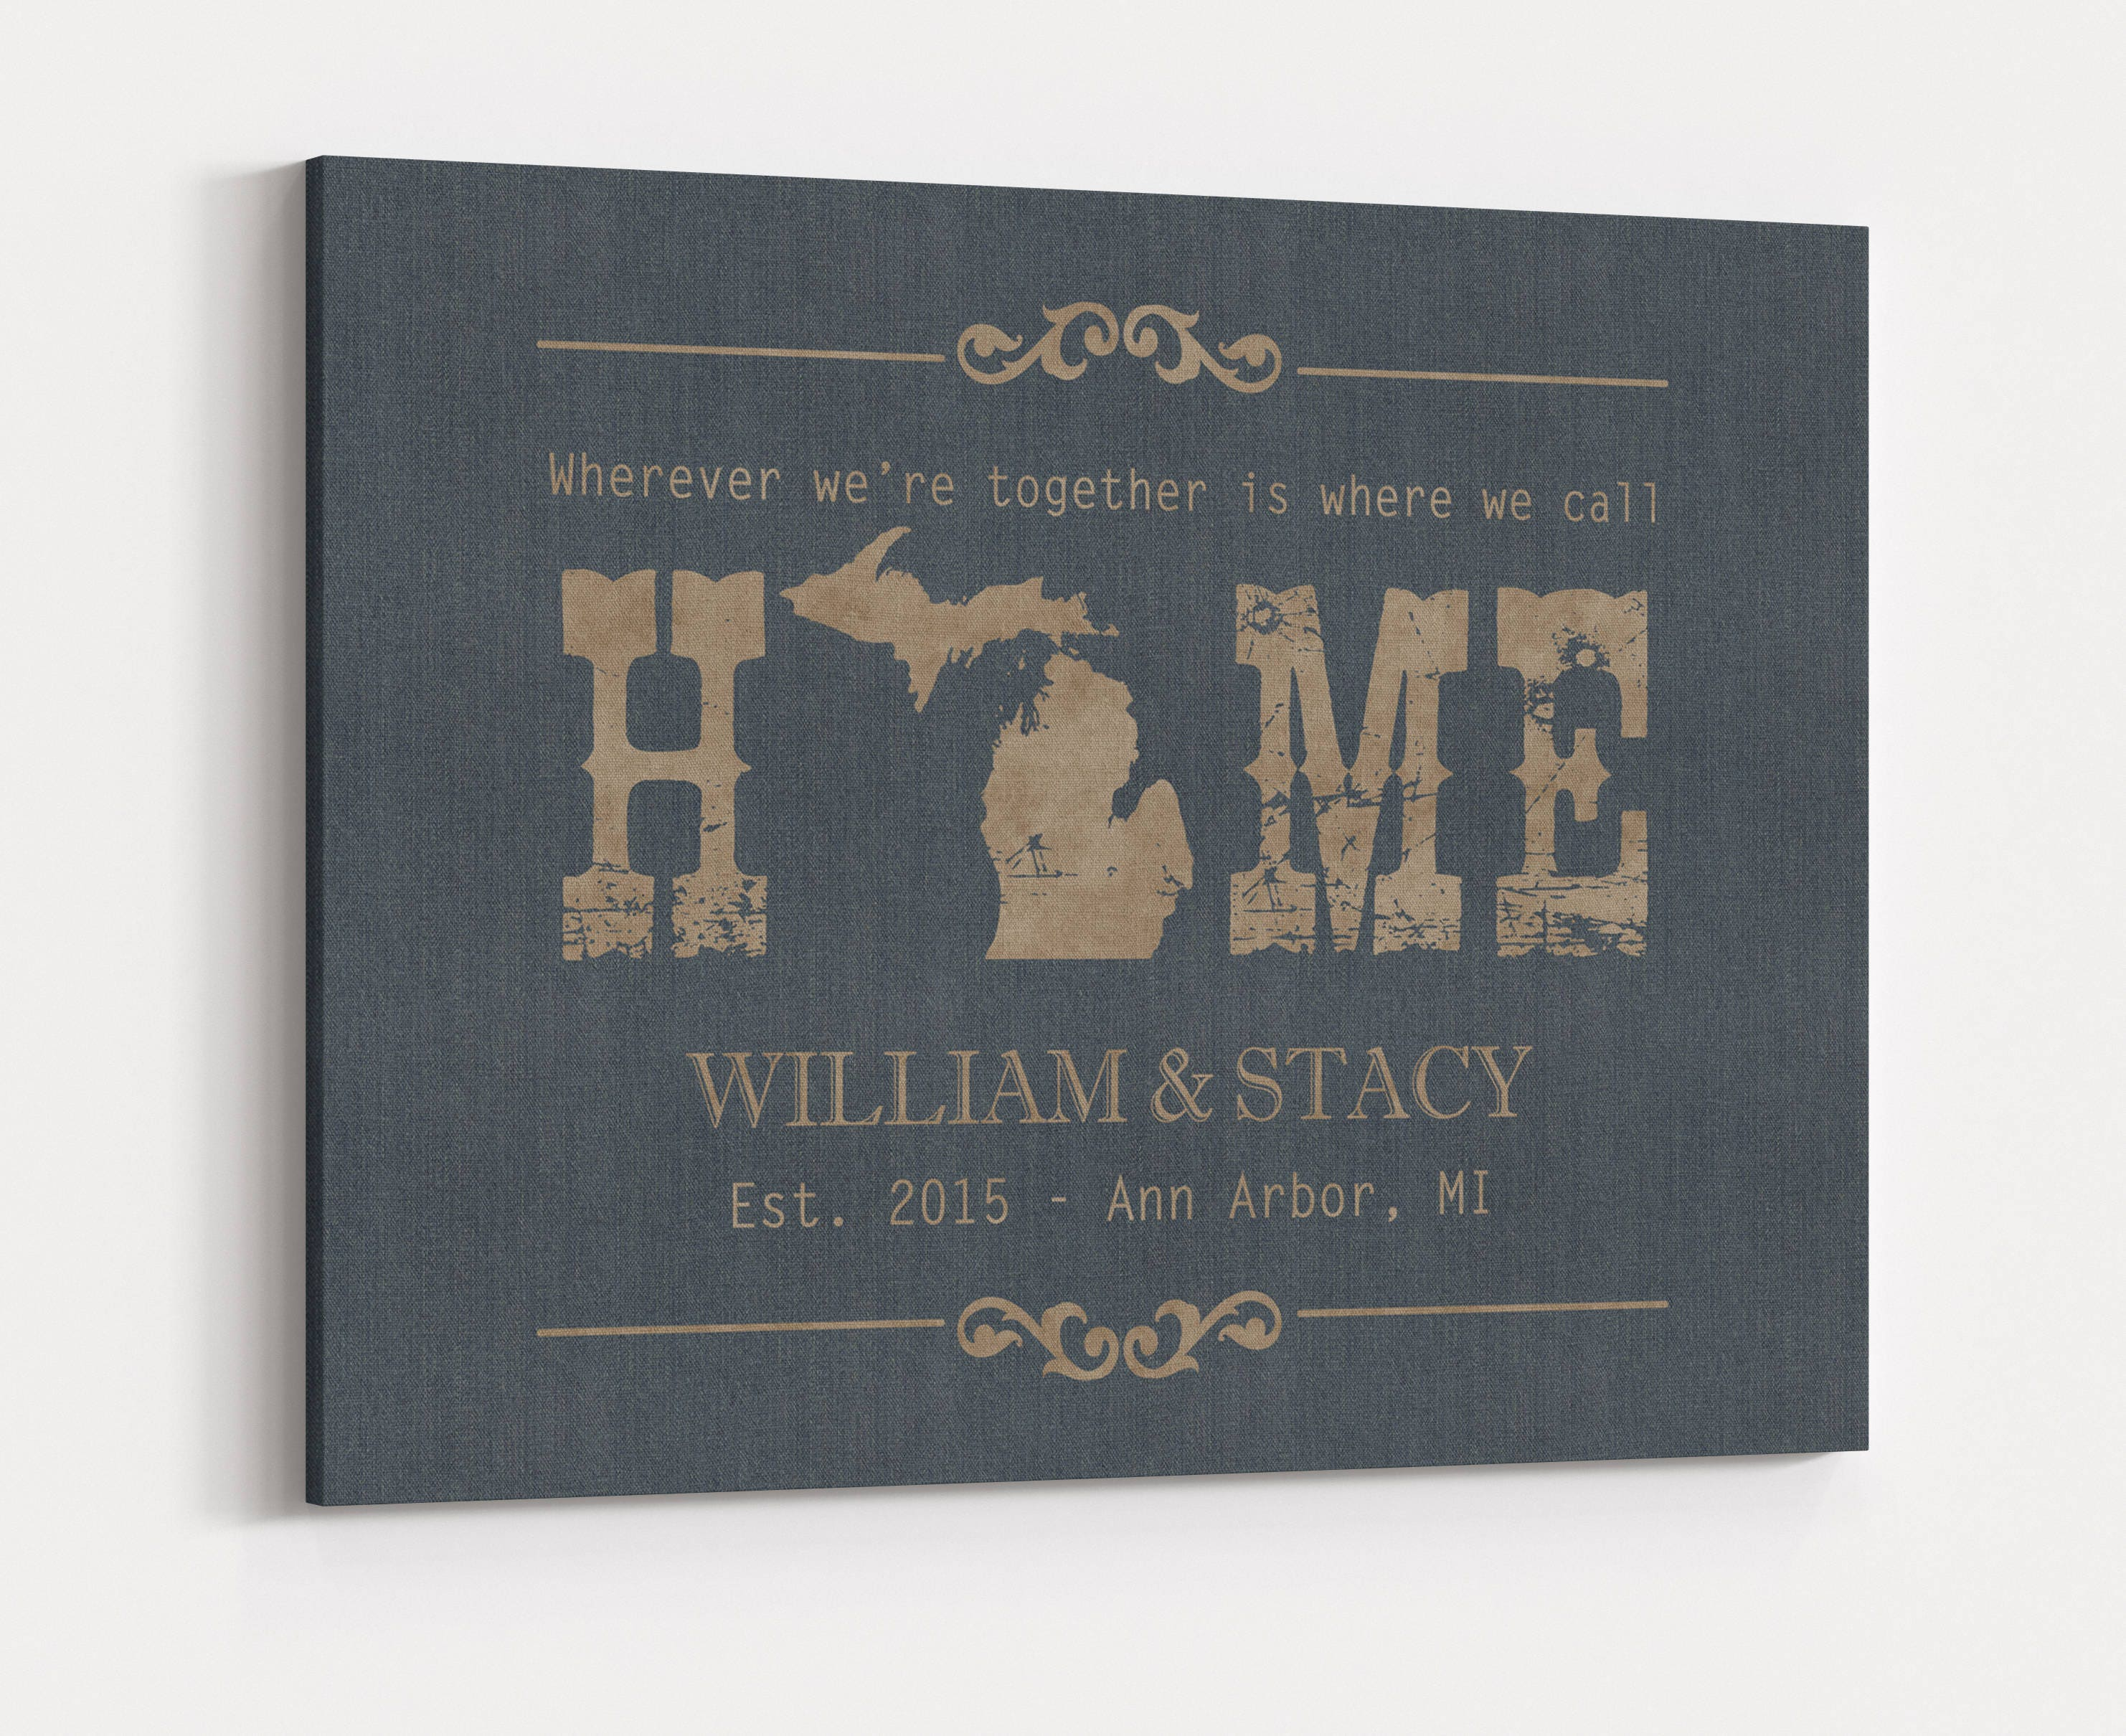 1st Wedding Anniversary Gift For Wife: First Anniversary Gift For Wife Or Husband Paper